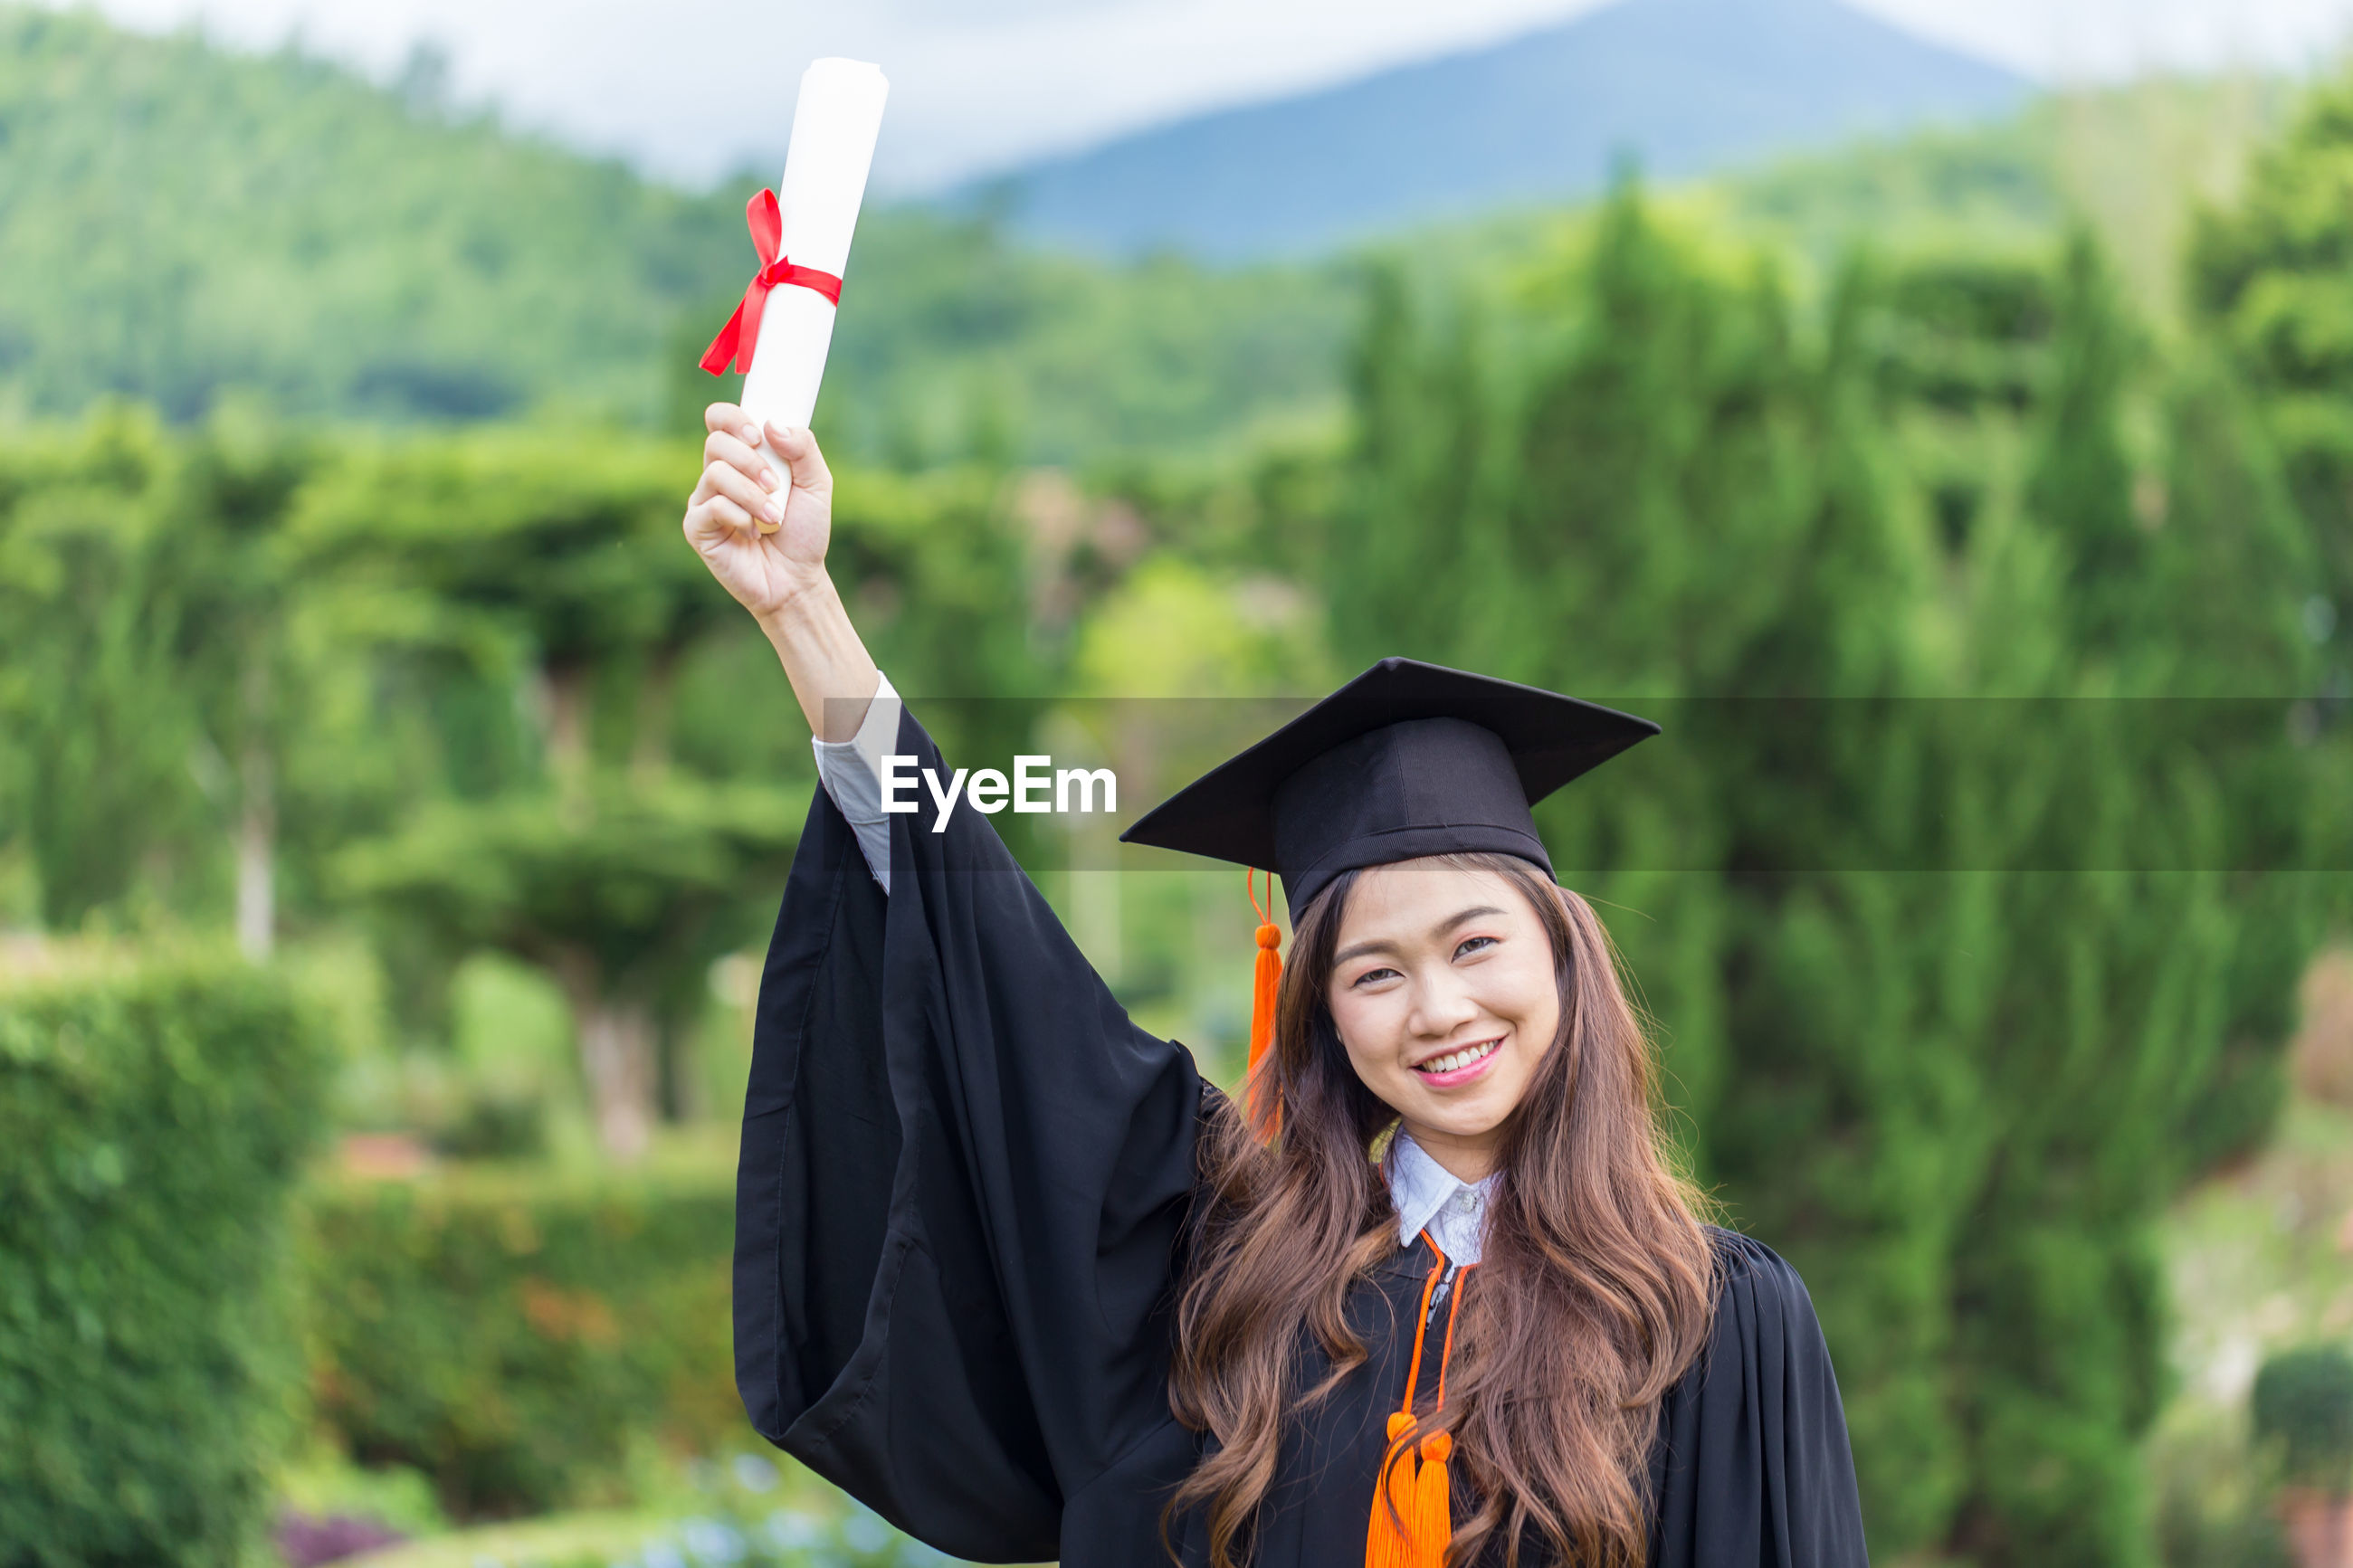 Portrait of smiling woman in graduation gown holding certificate against trees